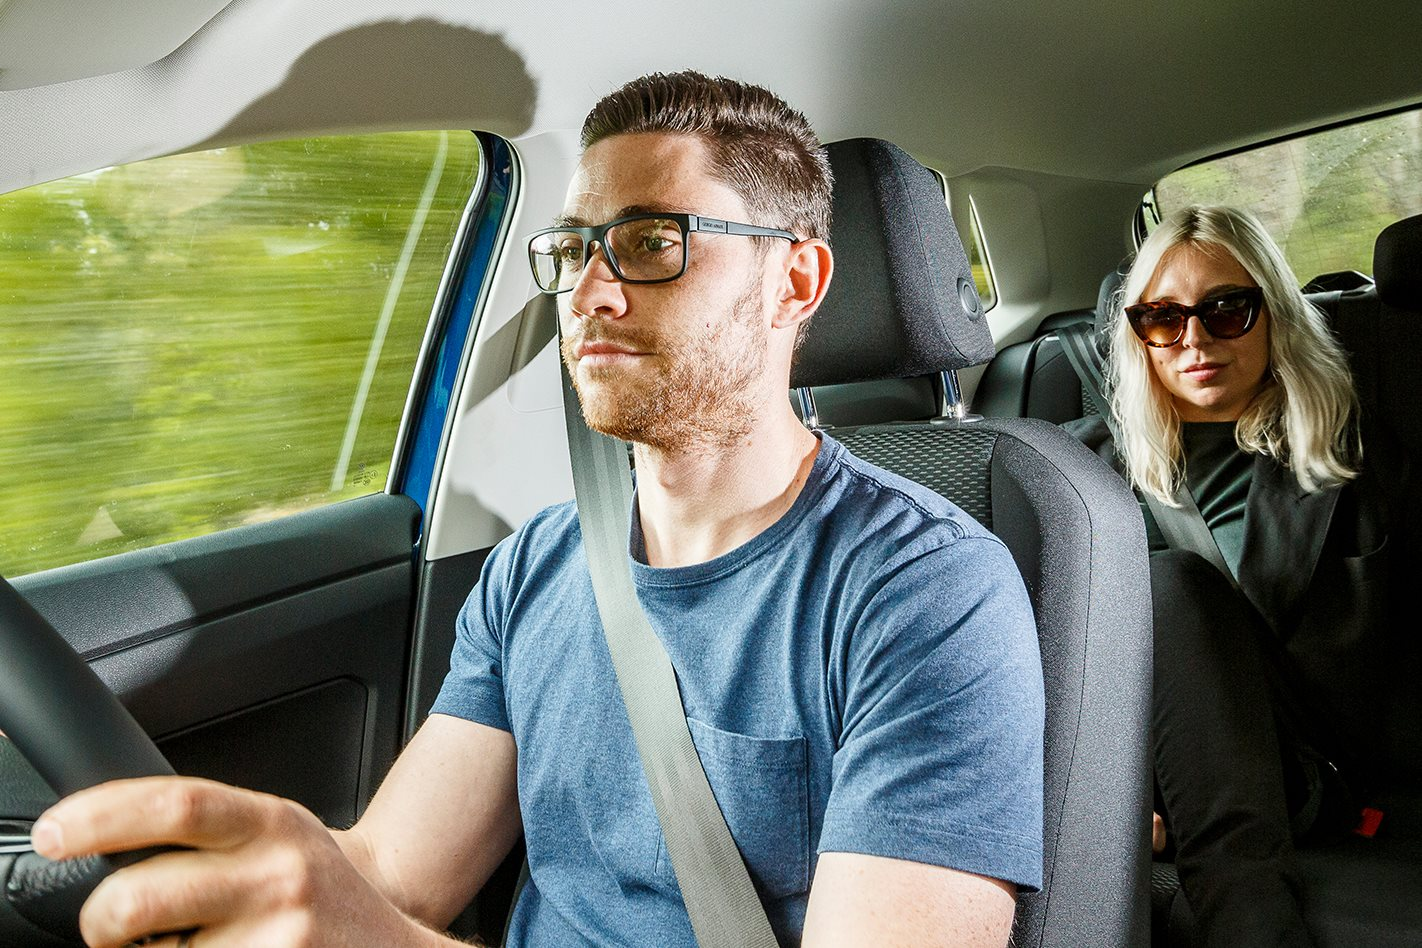 Is it legal or ethical to offer women lower car insurance premiums?